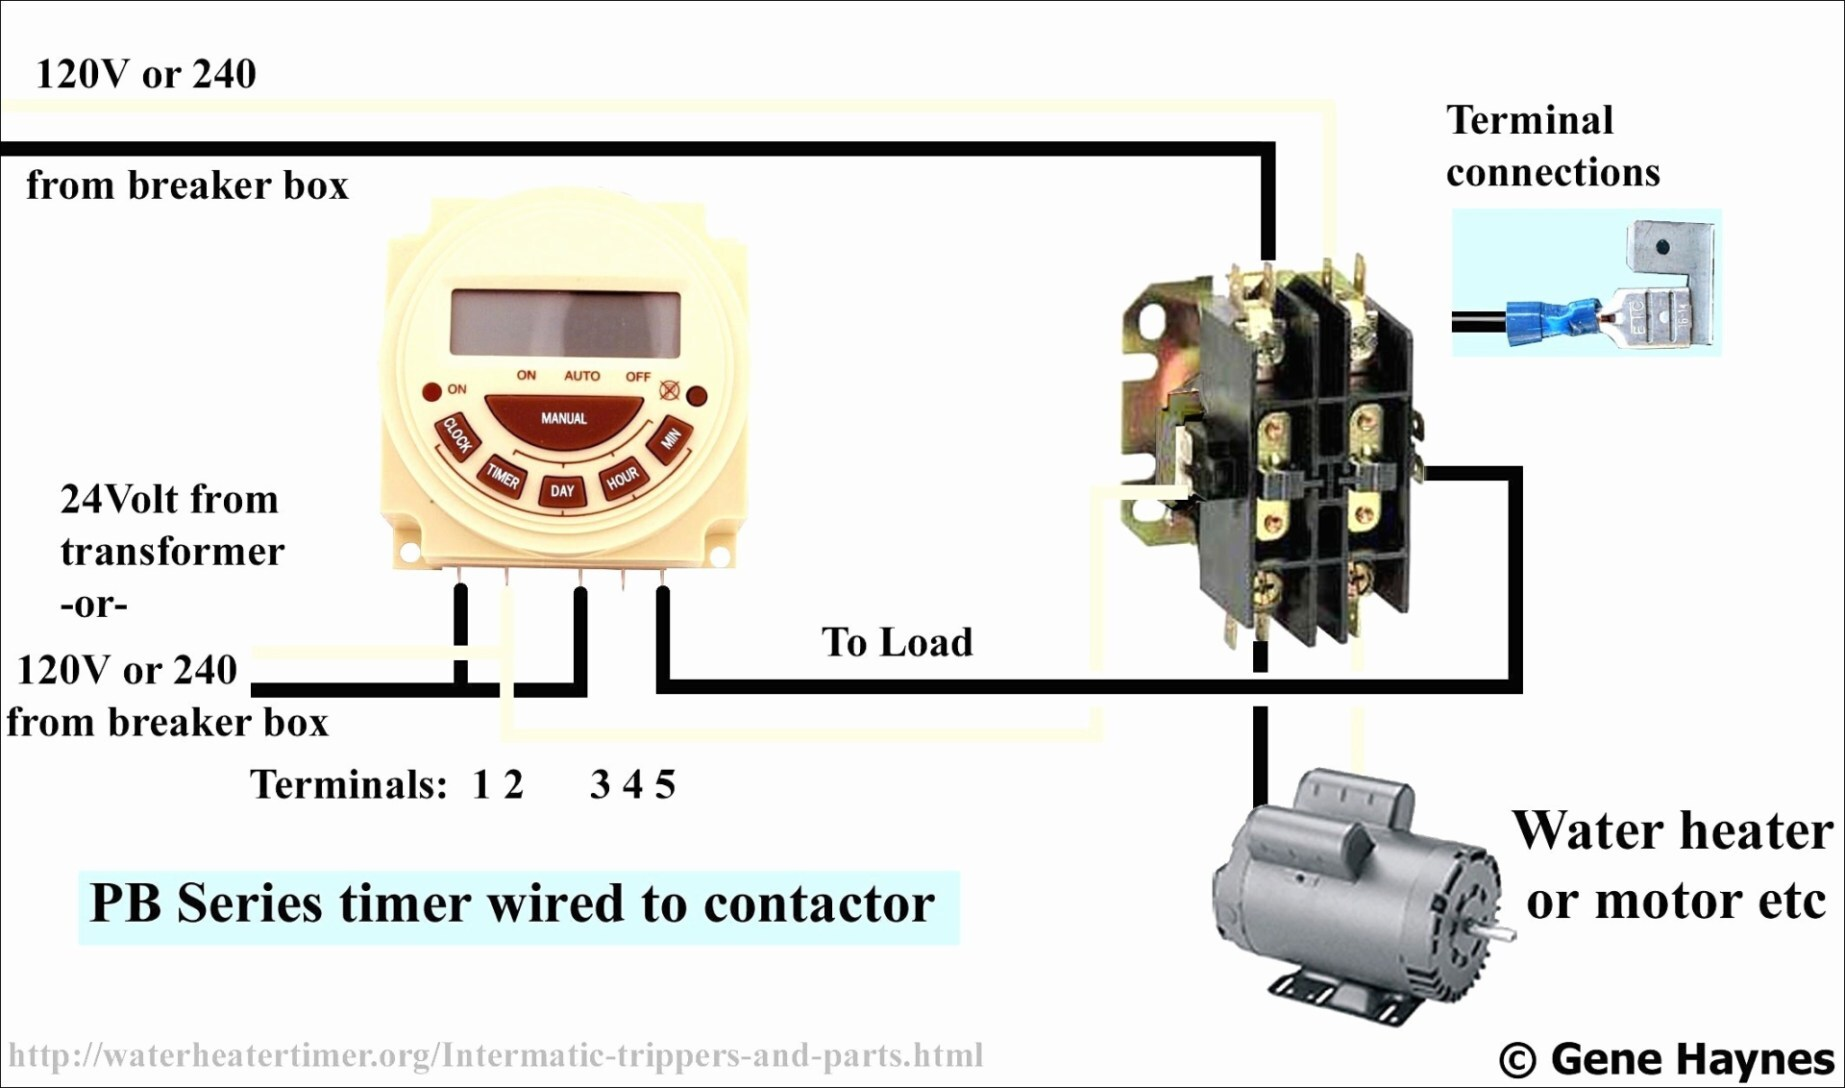 [GJFJ_338]  Intermatic Water Heater Timer - Water Ionizer | Intermatic Pool Timer Wiring Diagram |  | Water Ionizer - kimiq.com